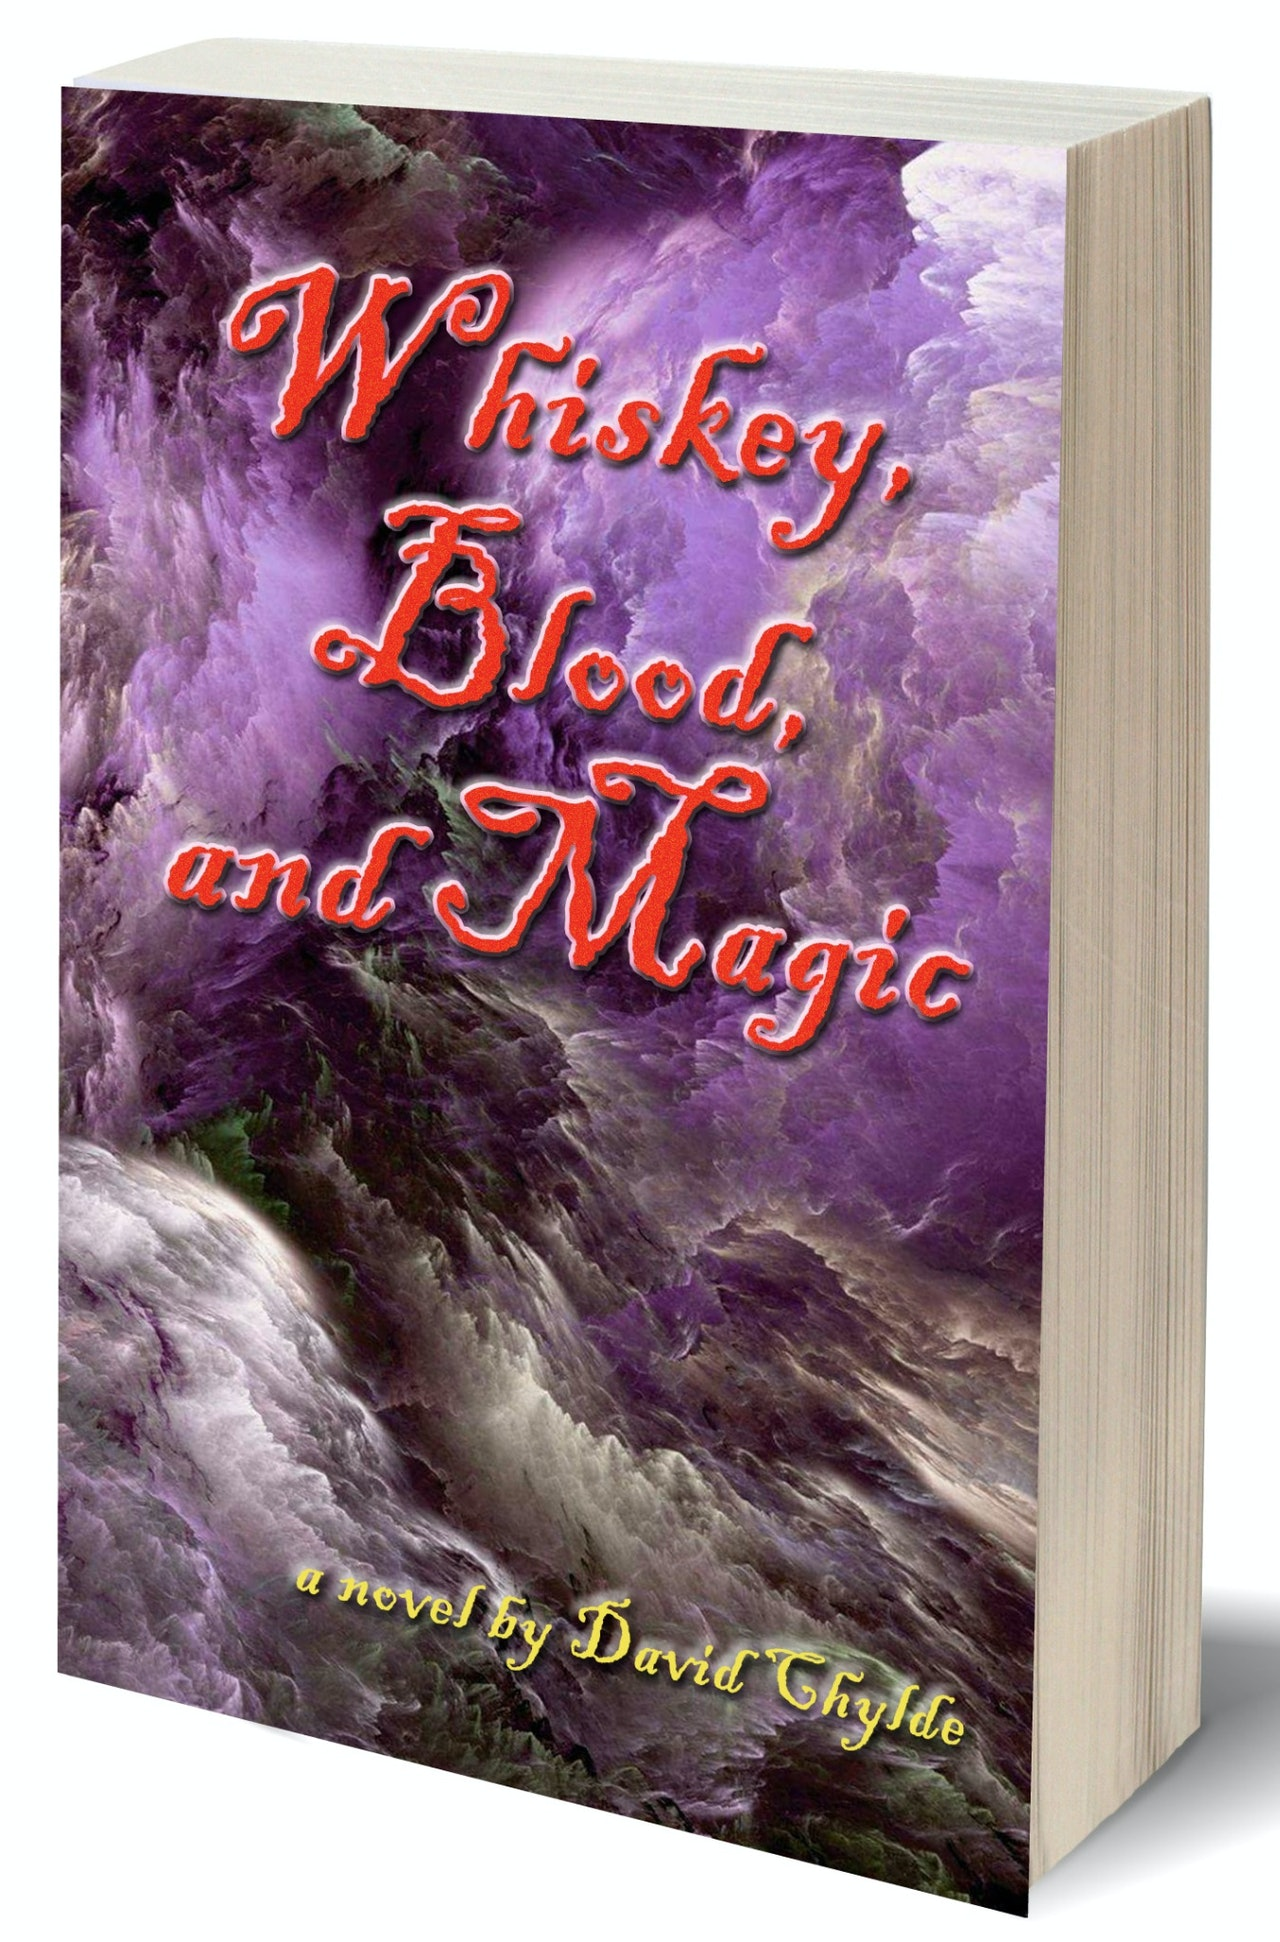 Paperback: Whiskey, Blood, and Magic